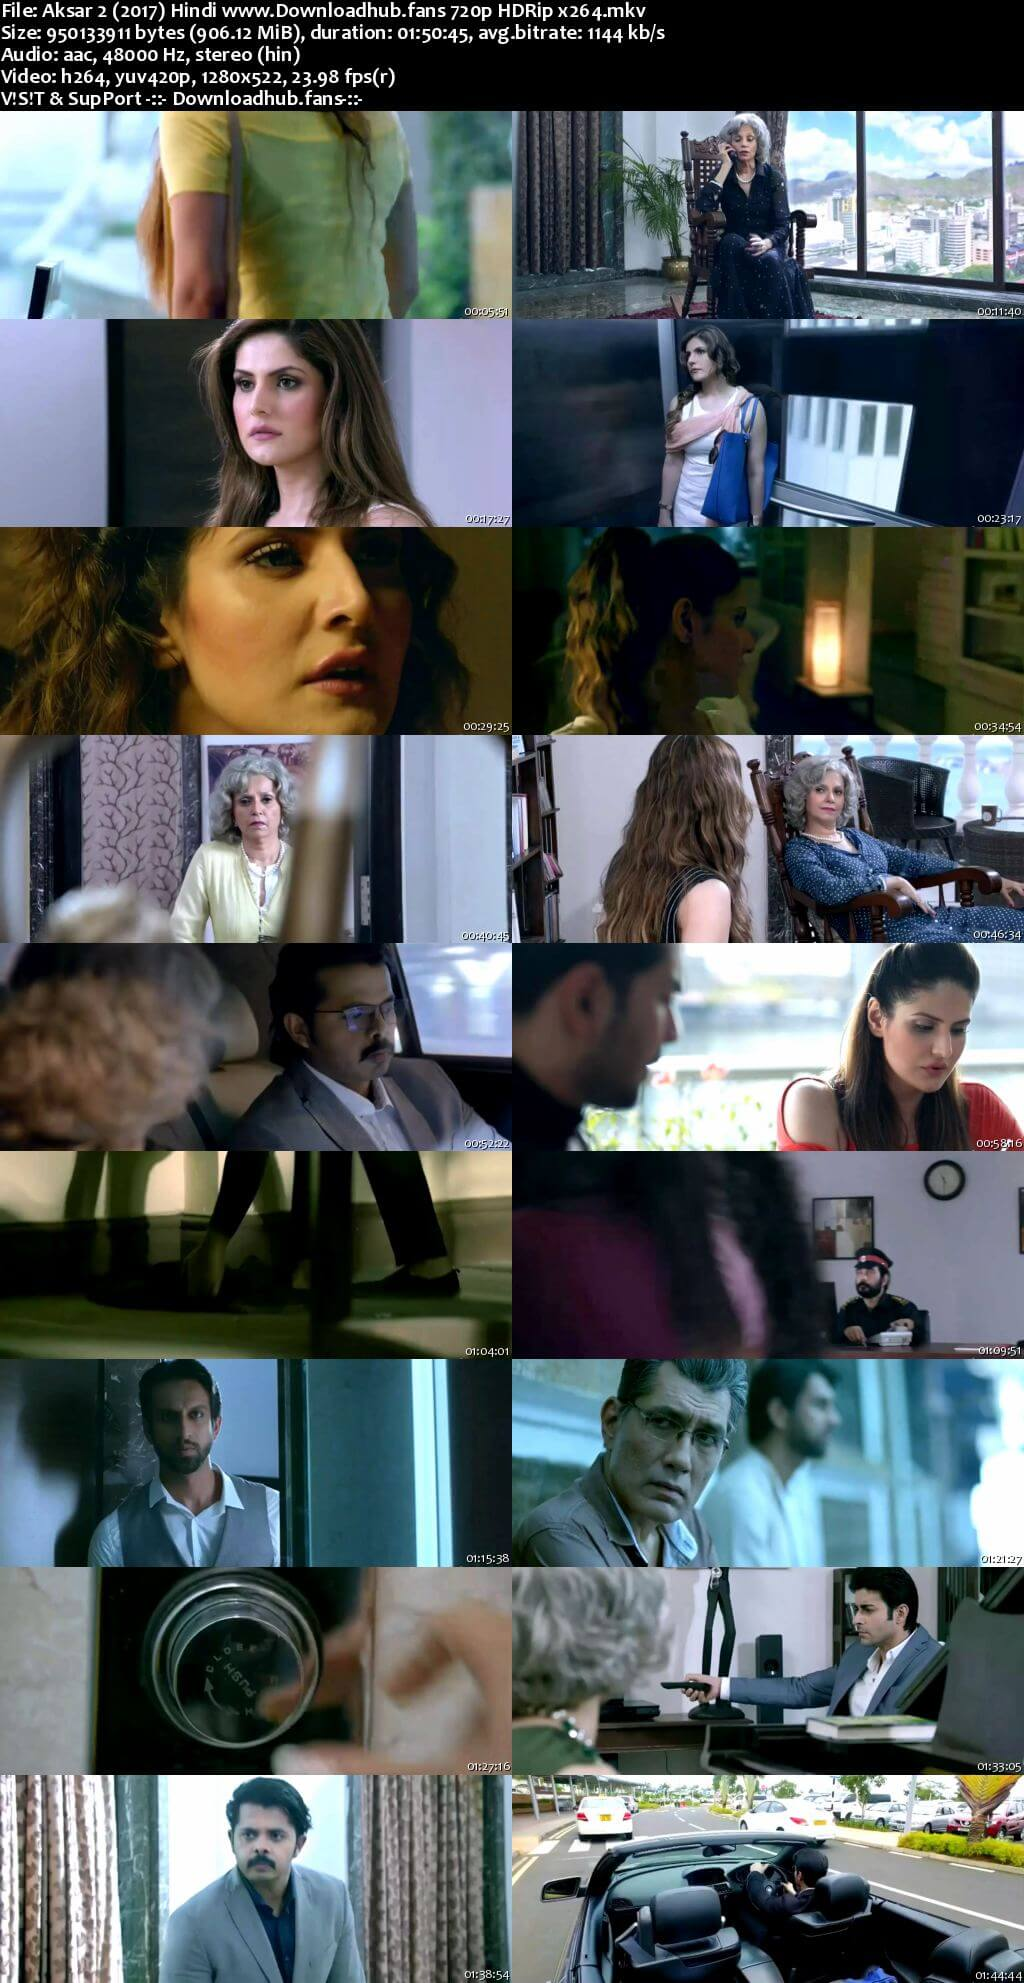 Aksar 2 2017 Hindi 720p HDRip x264